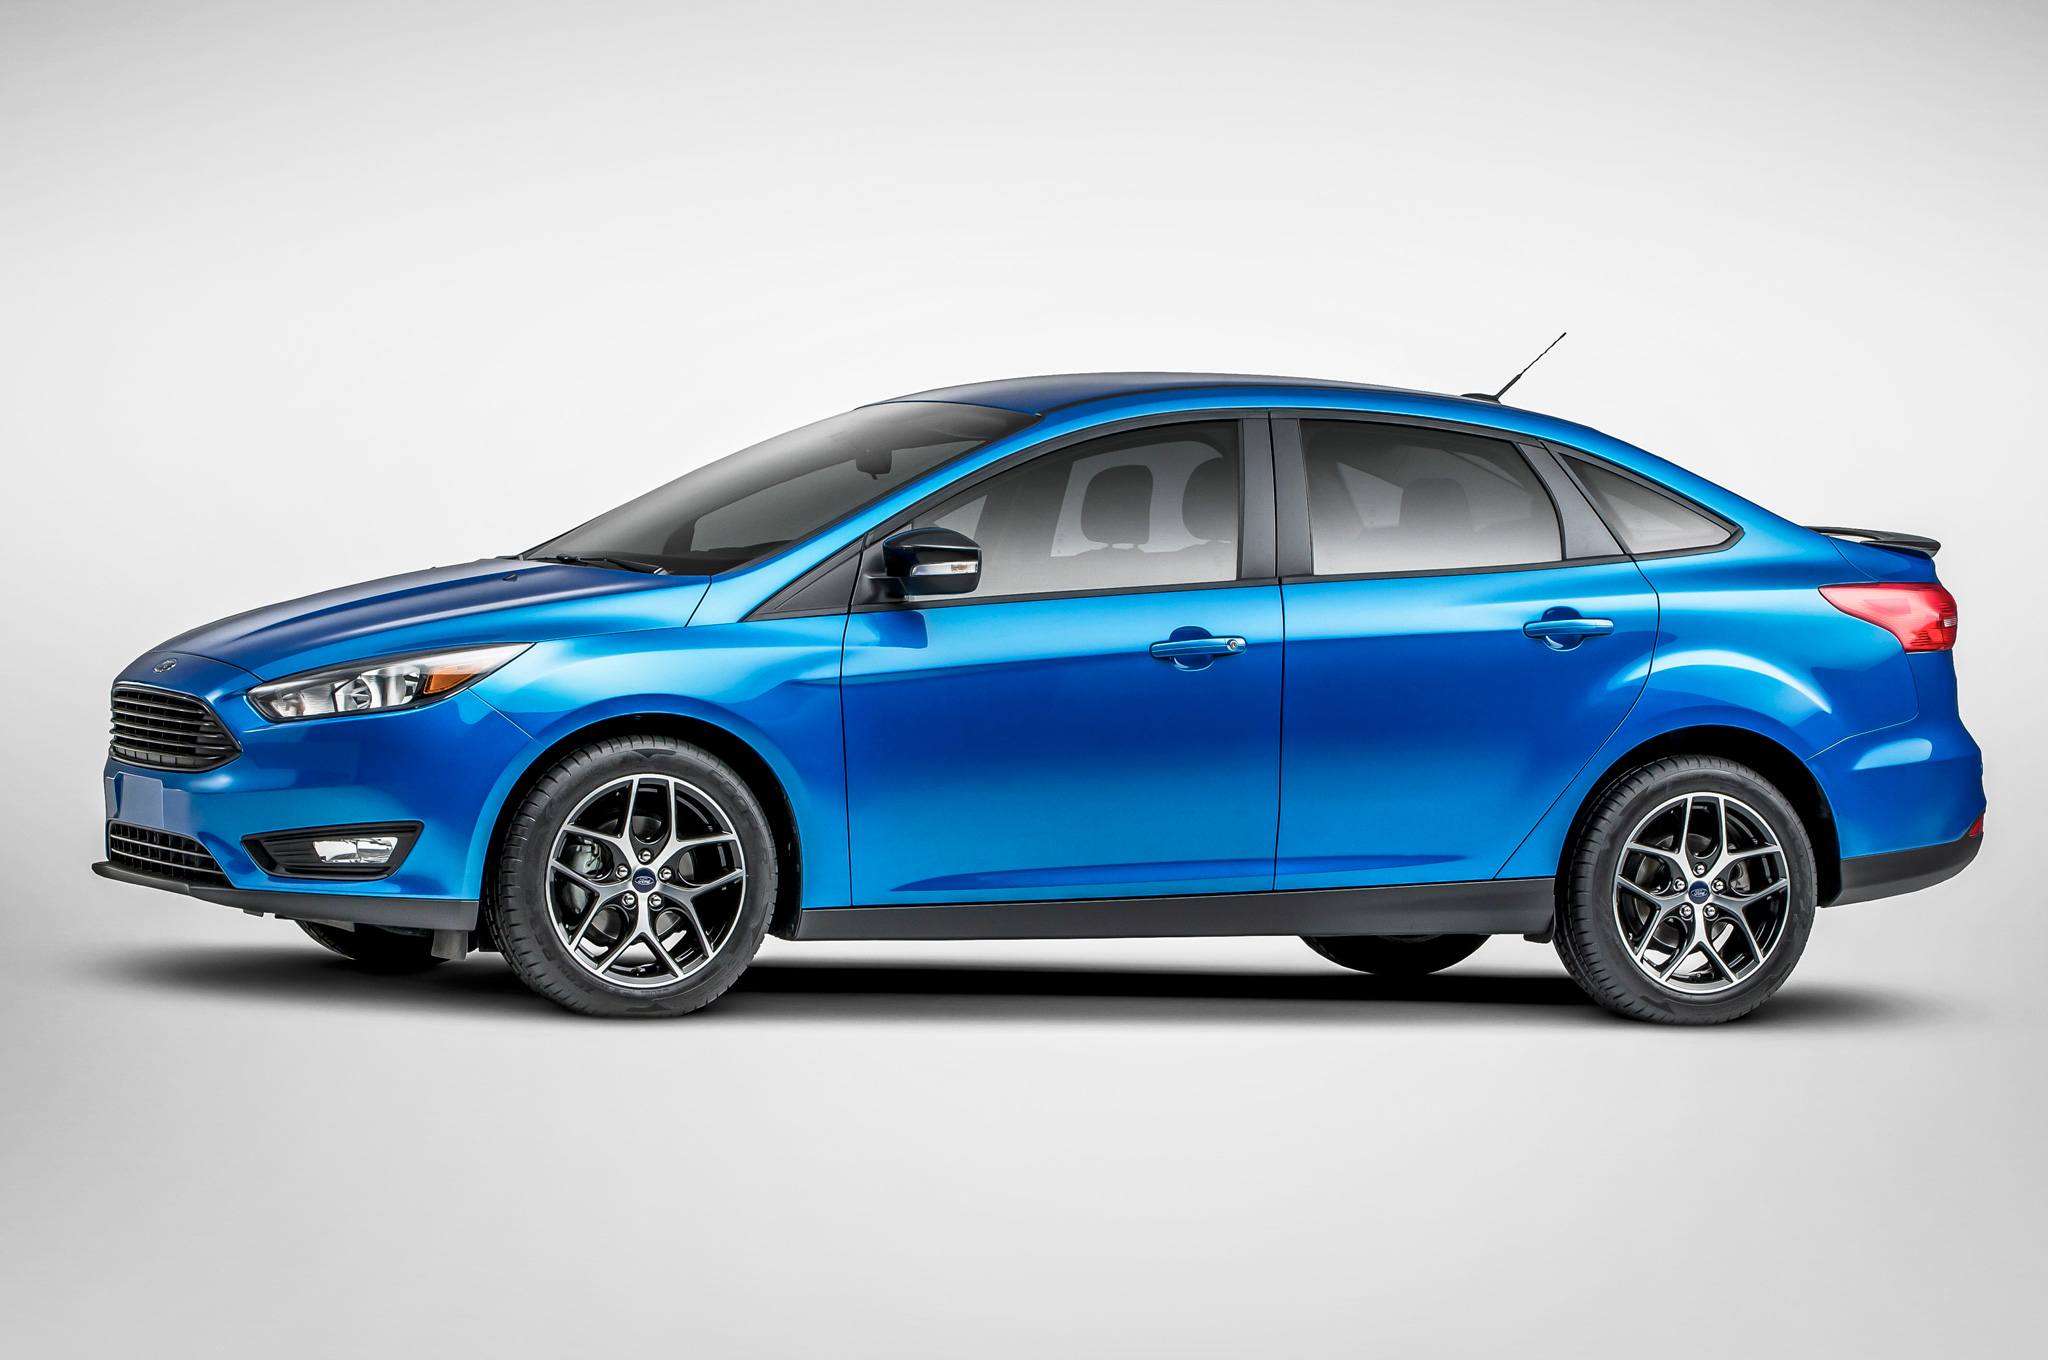 2015 ford focus iii pictures information and specs. Black Bedroom Furniture Sets. Home Design Ideas